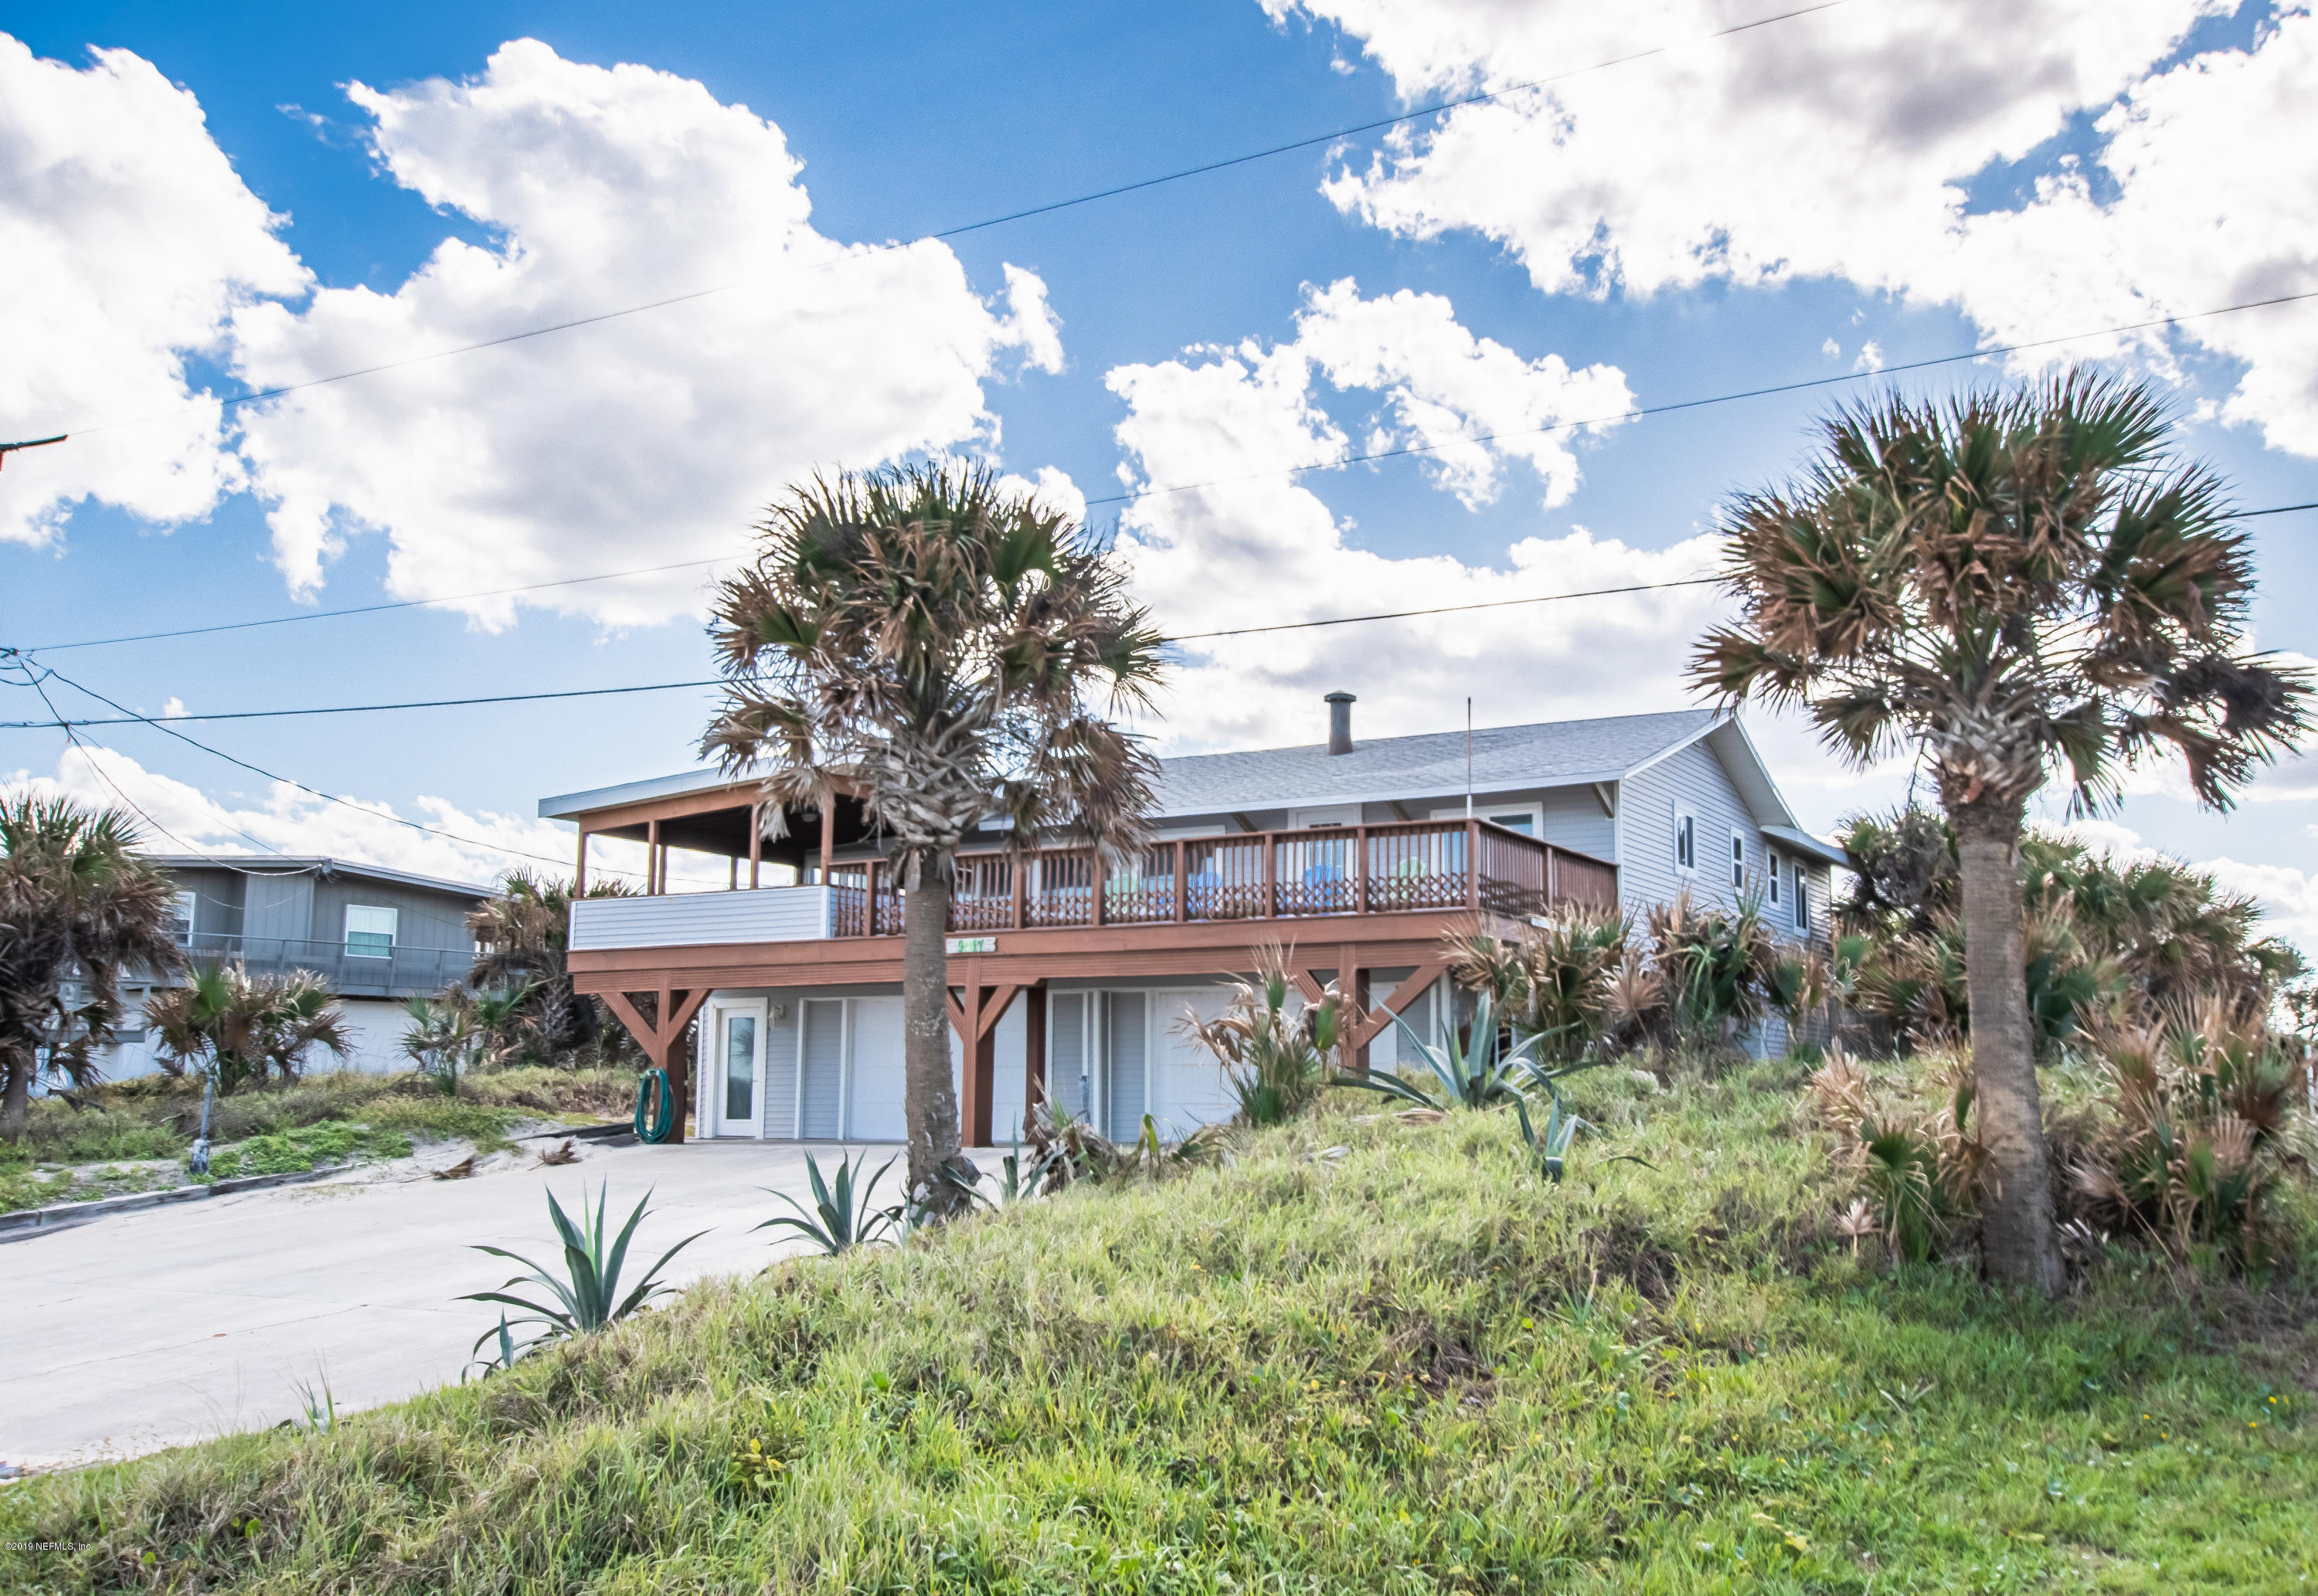 9017 OLD A1A, ST AUGUSTINE, FLORIDA 32080, 4 Bedrooms Bedrooms, ,3 BathroomsBathrooms,For sale,OLD A1A,1025432